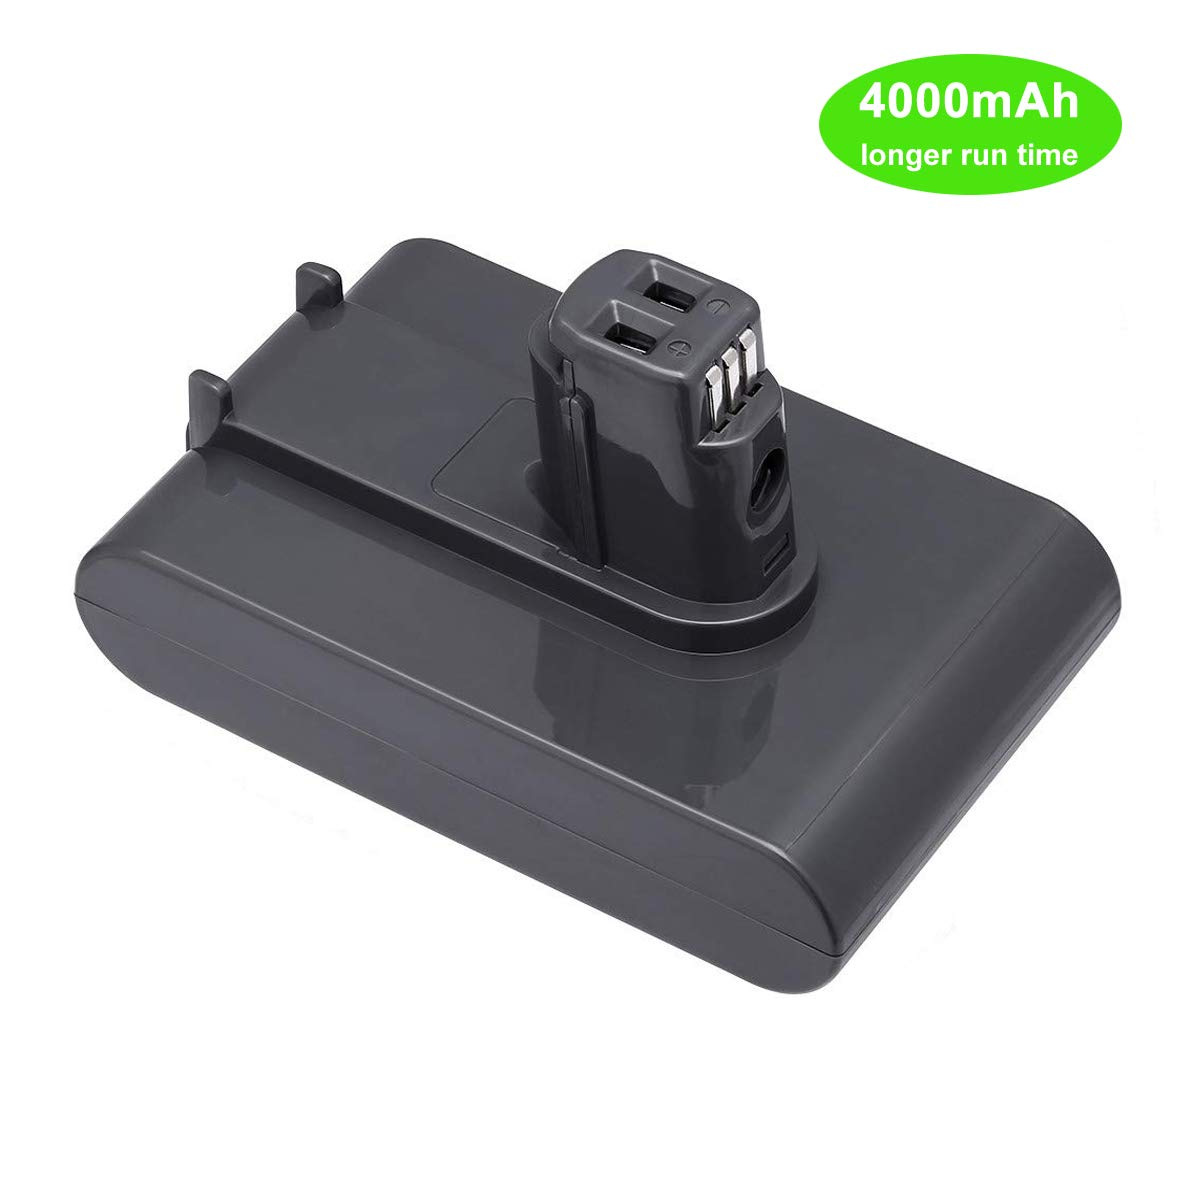 22.2V 4.0Ah DC31 Lithium Replacement Battery for Dyson 22.2V DC34 DC35 DC31 DC44 (Not Fit Type B, DC44 MK2) 917083-01 Handheld Vacuum by SHGEEN